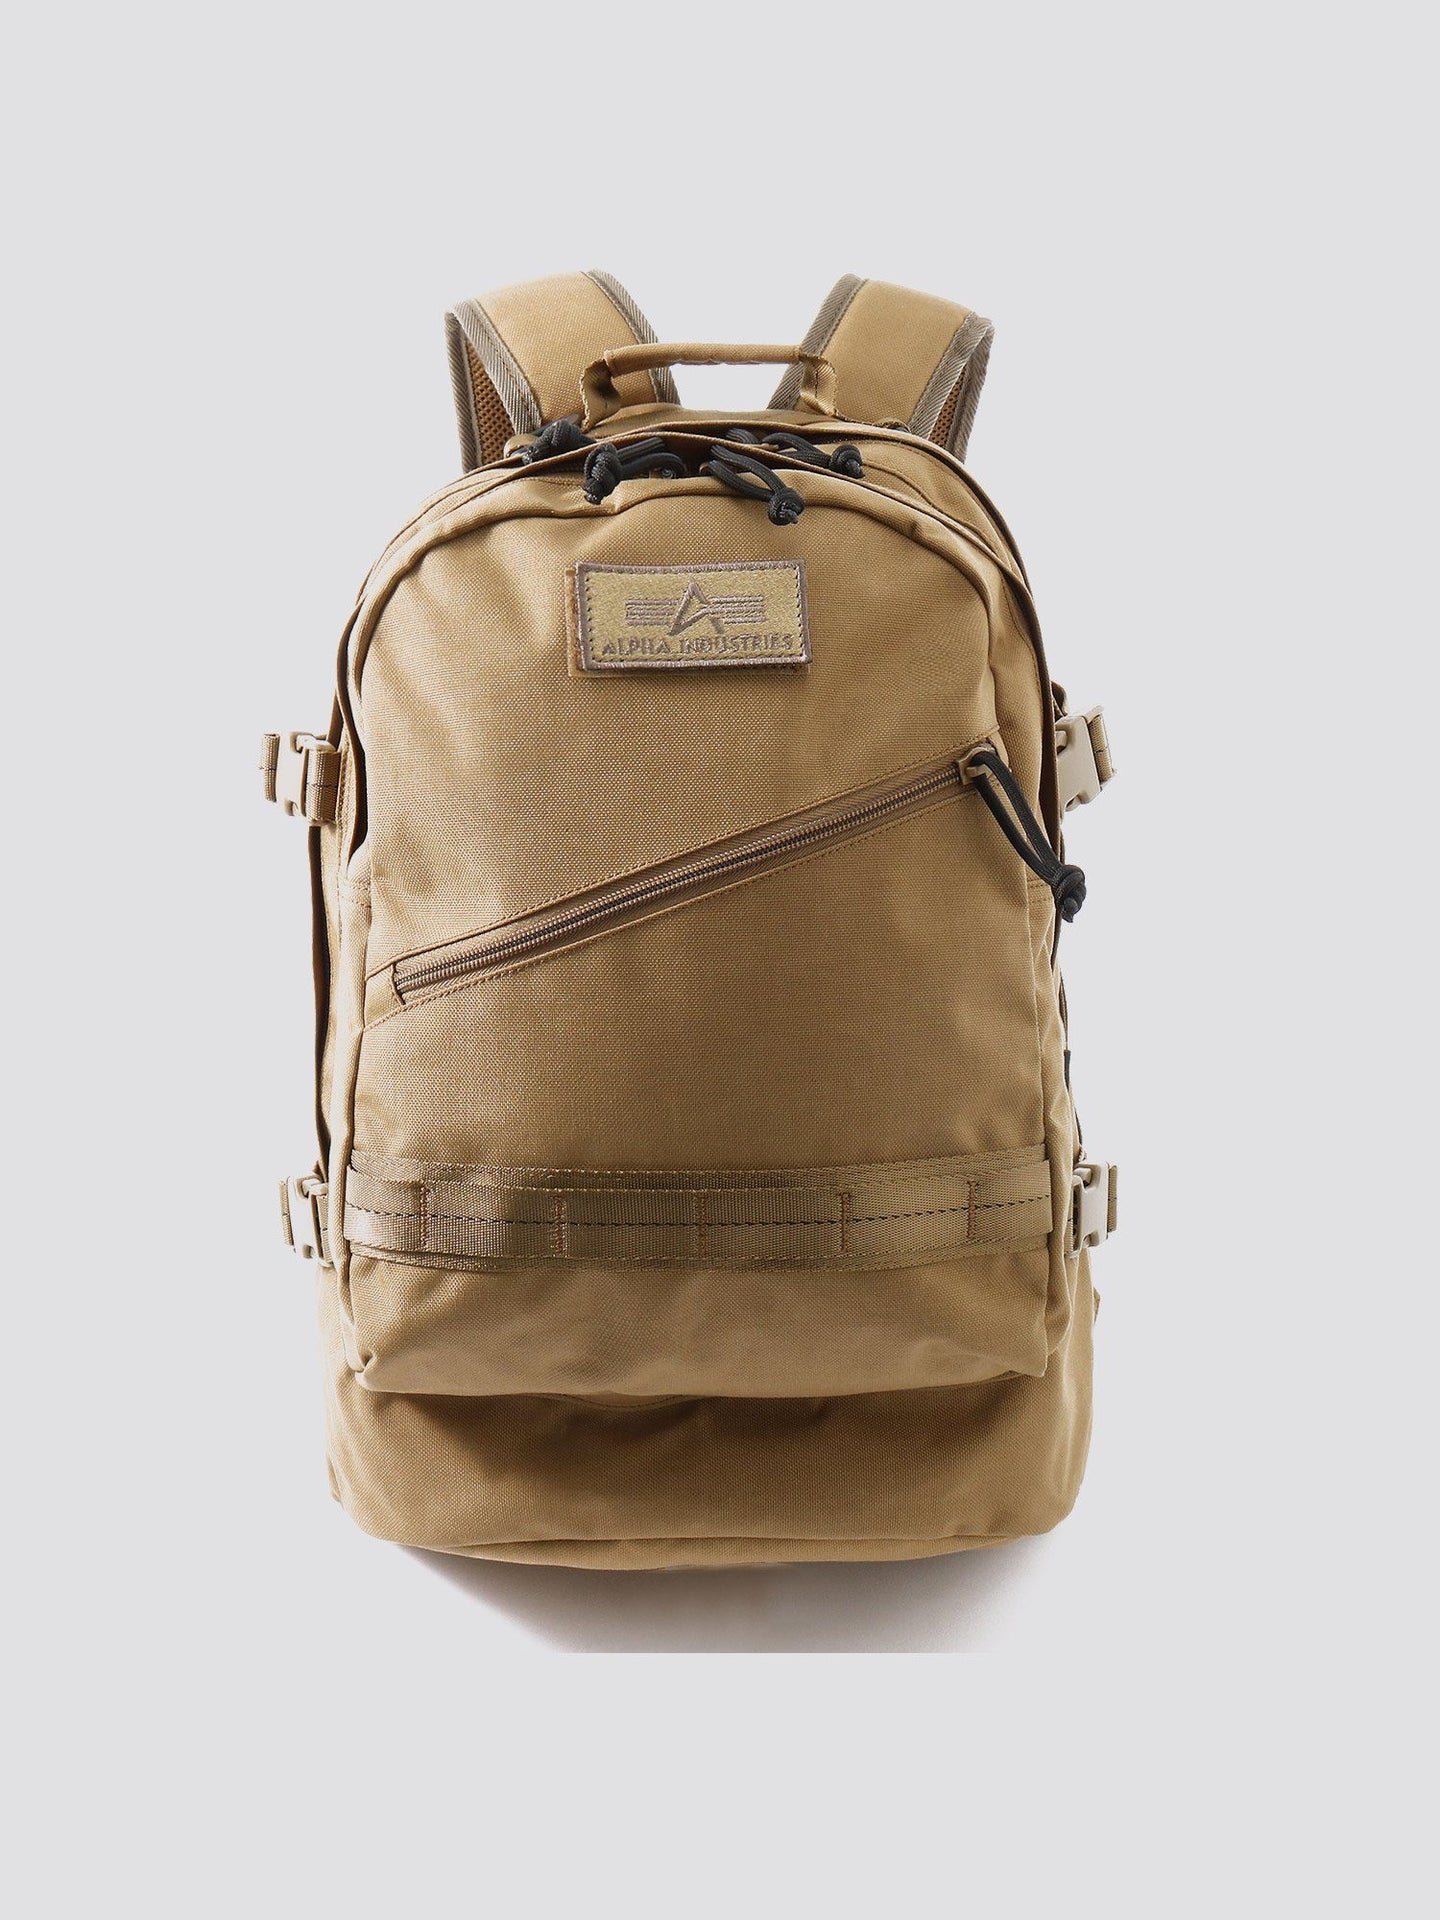 MISSION BACKPACK ACCESSORY Alpha Industries KHAKI O/S